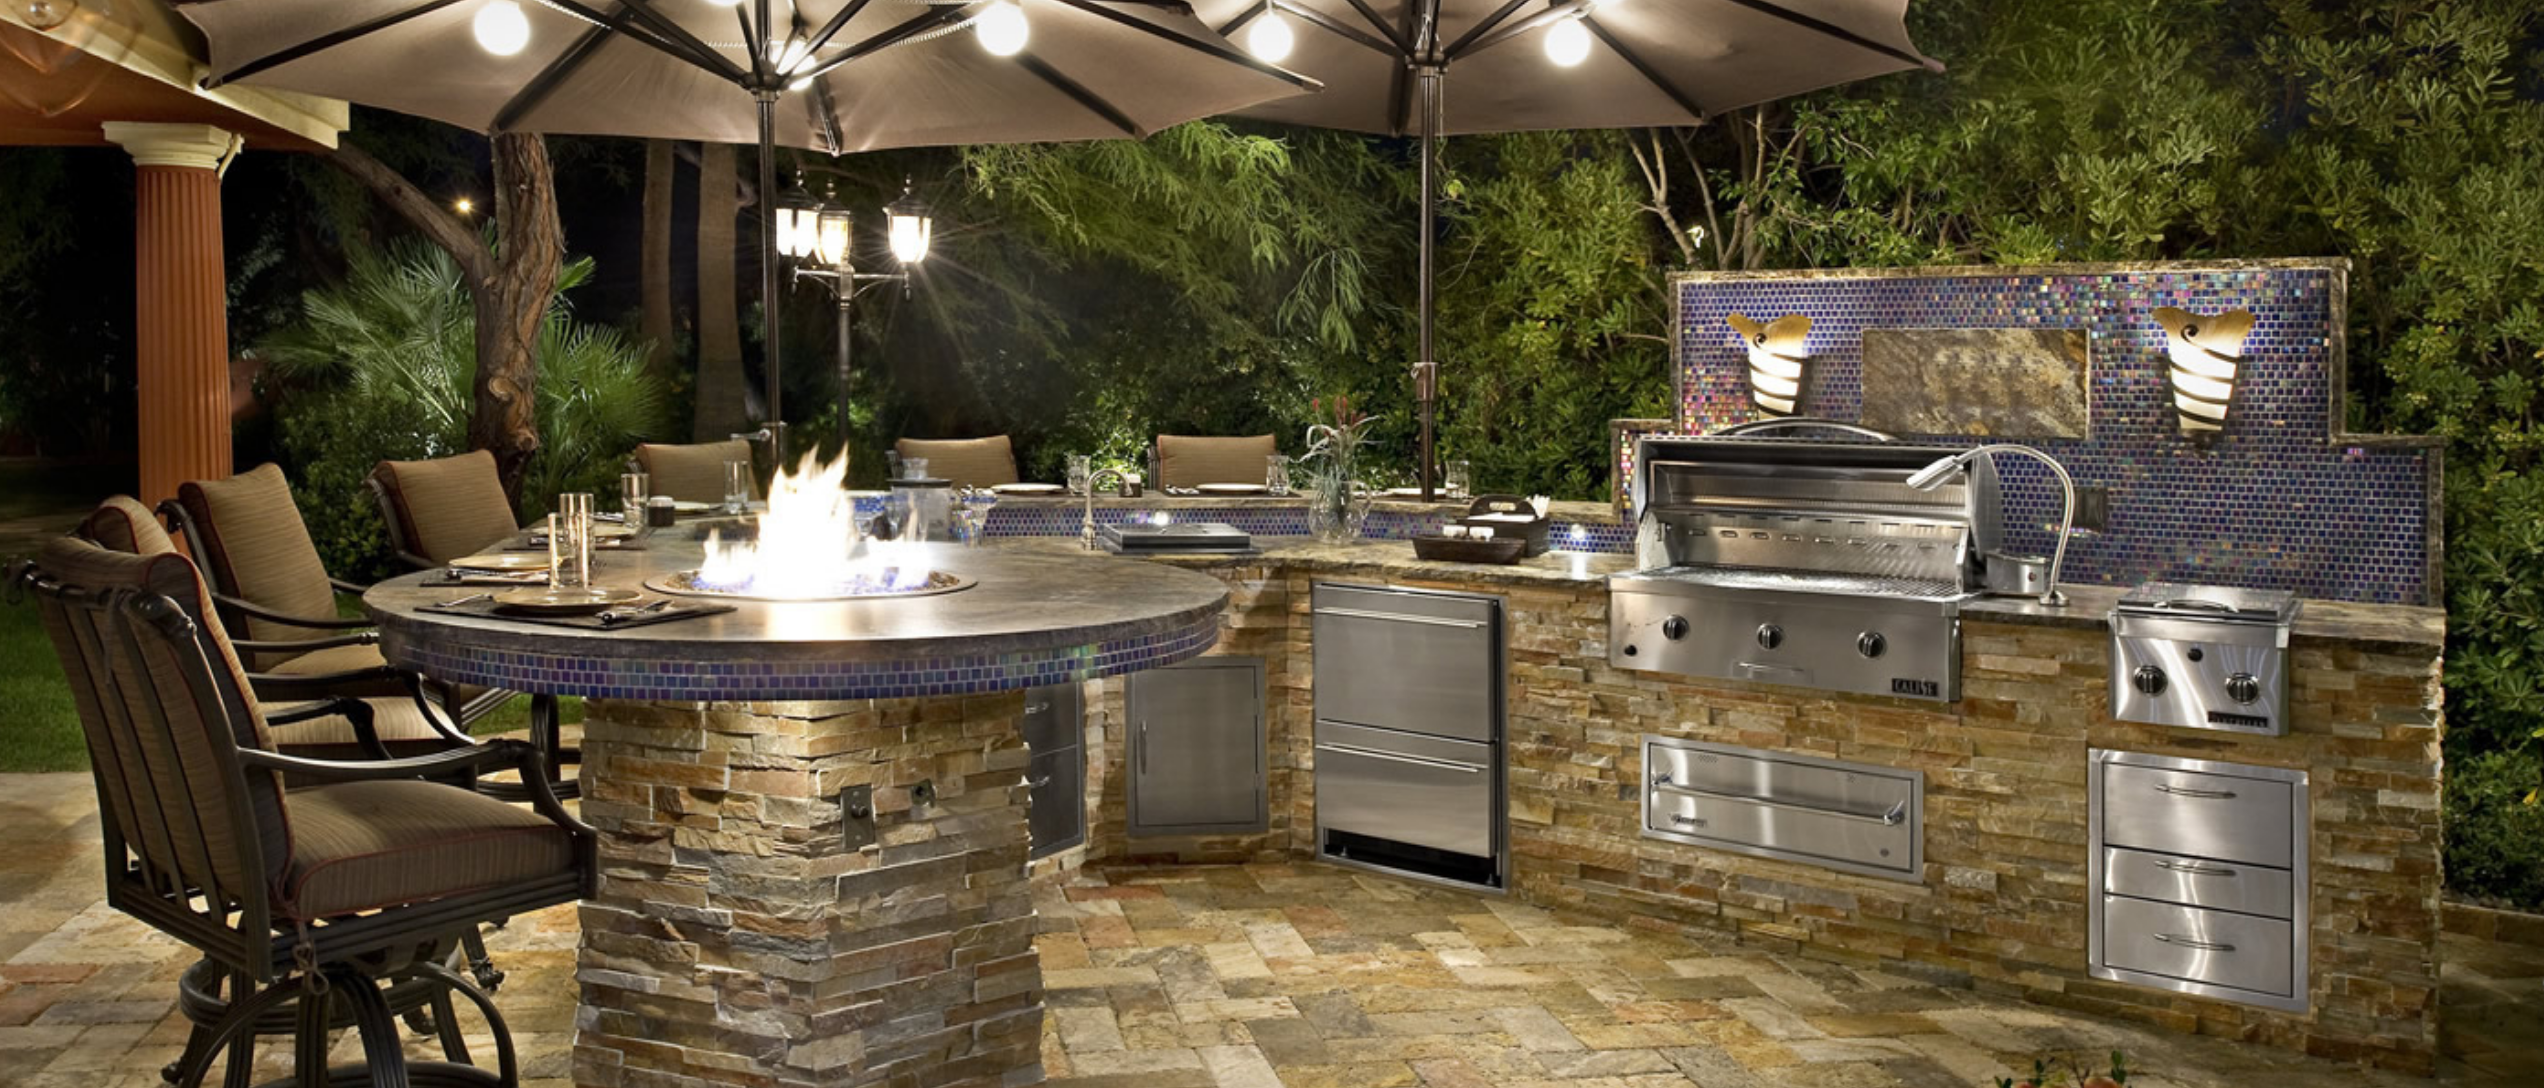 LA's Custom Outdoor Kitchens